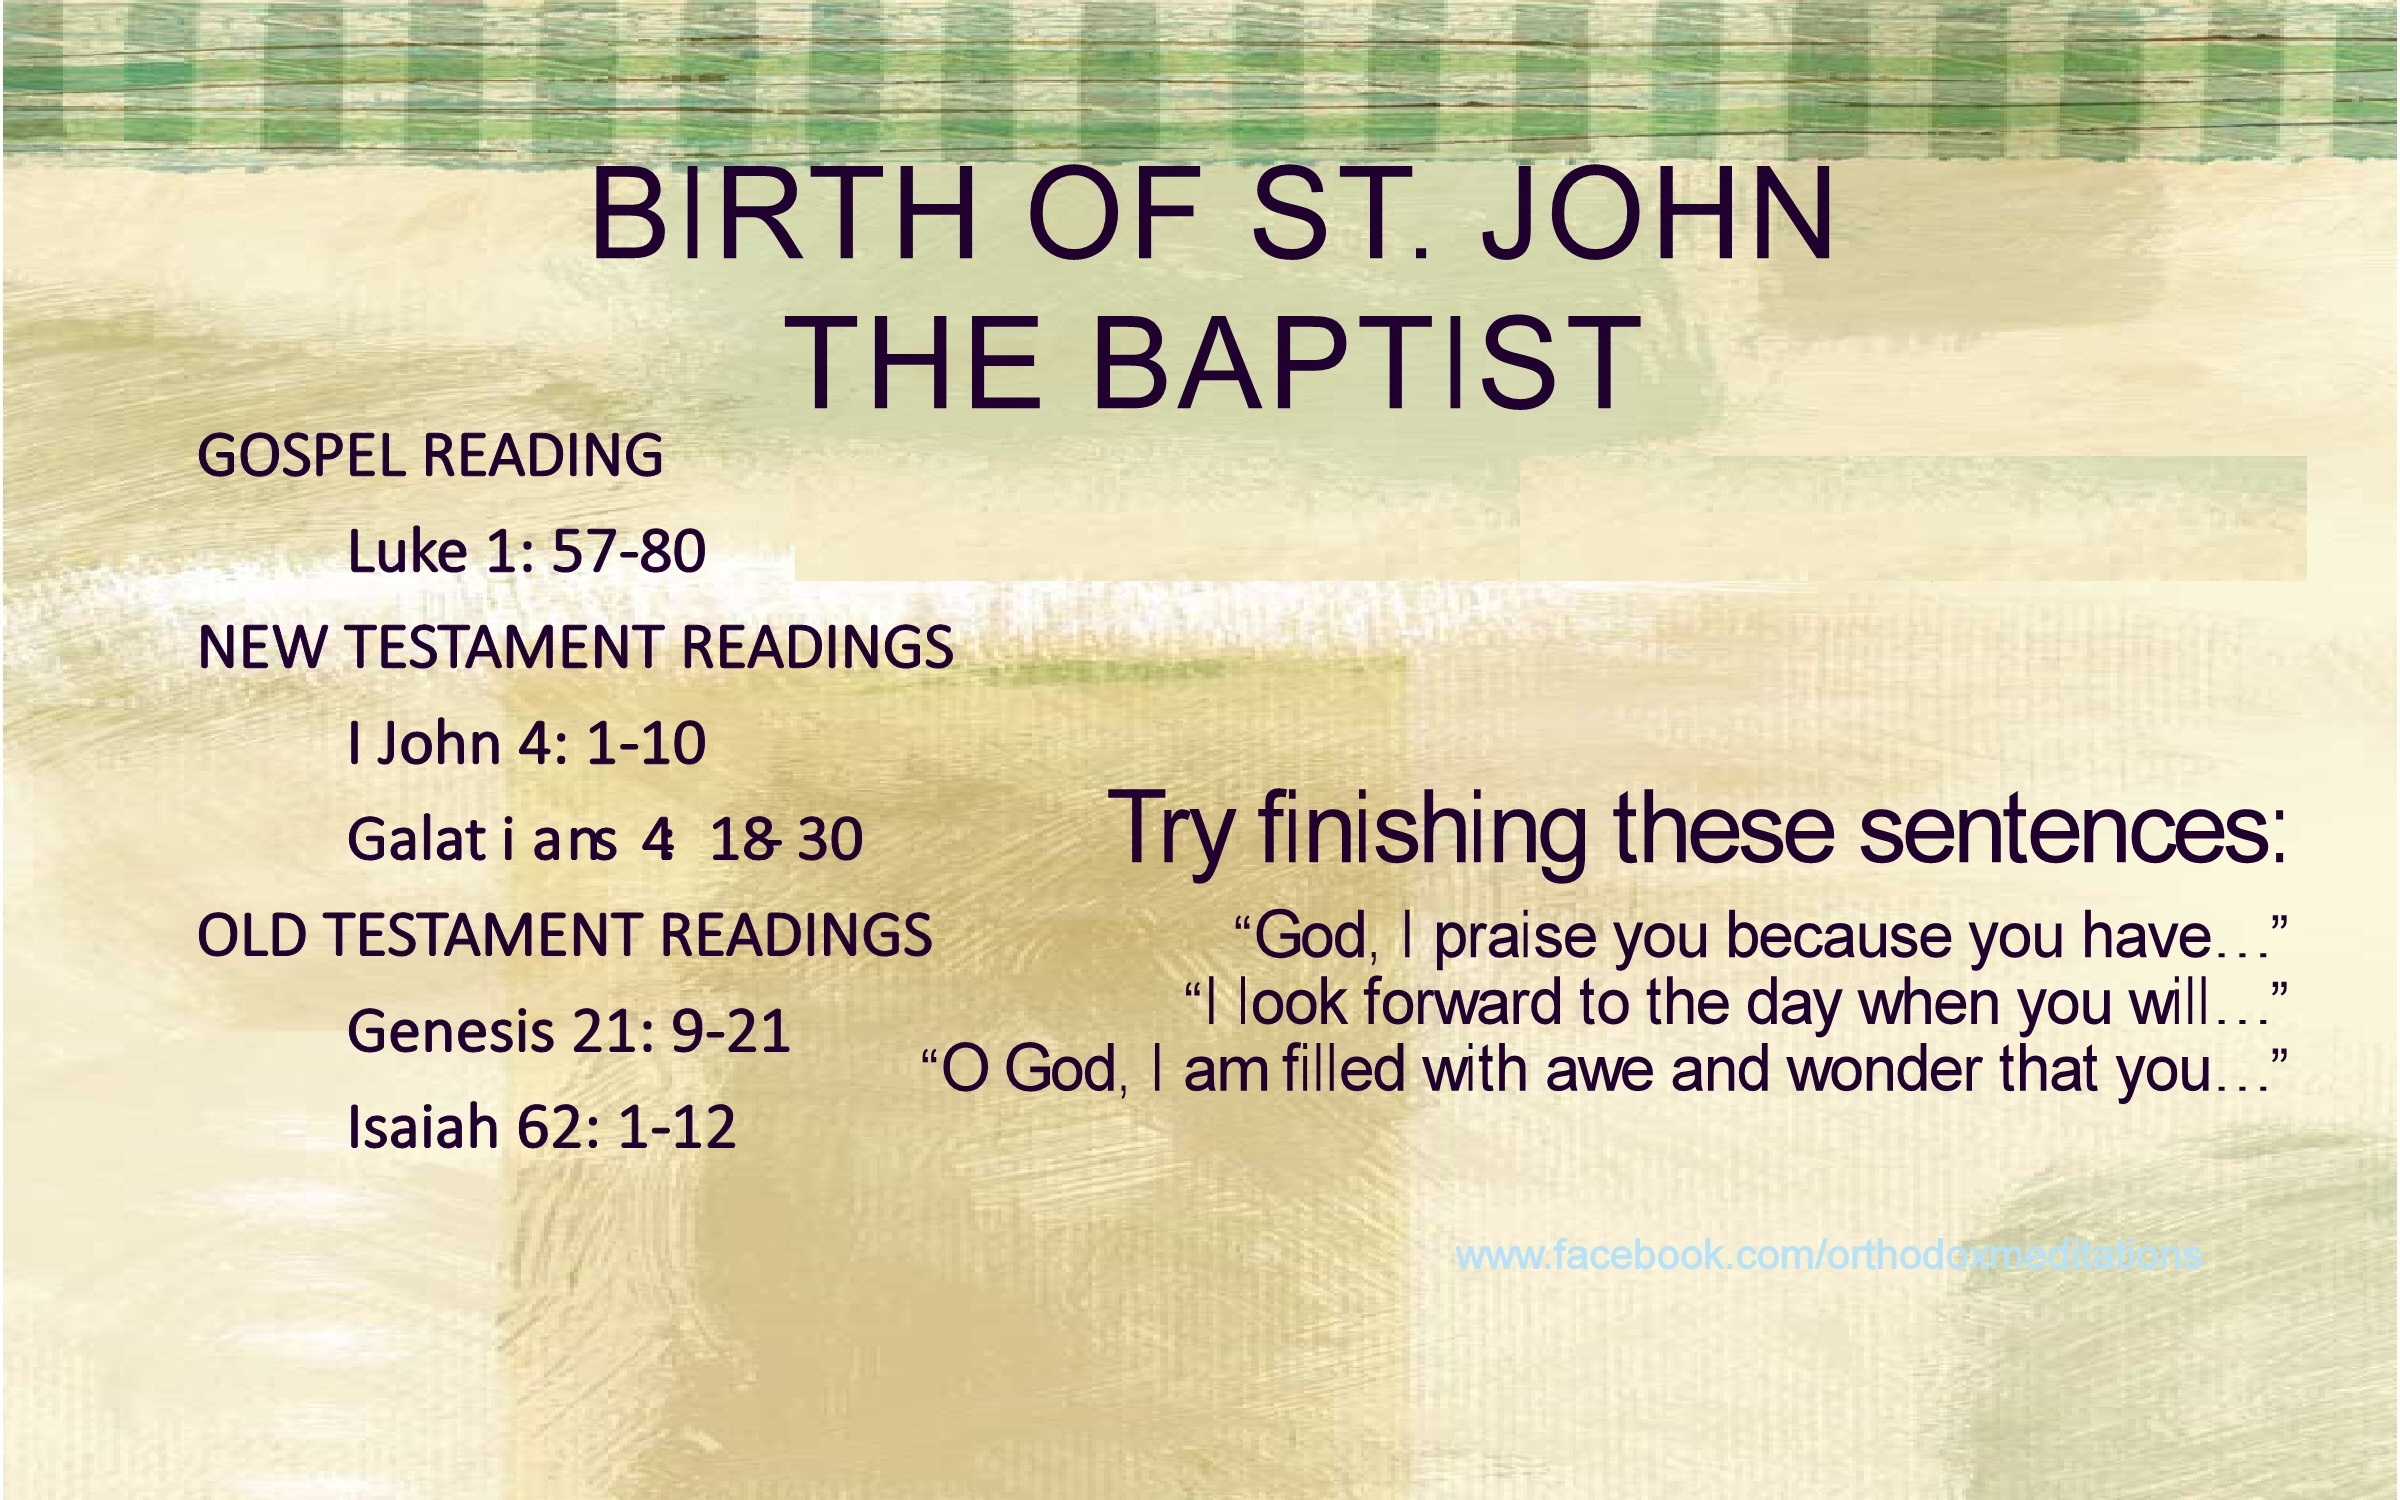 Birth-of-St.-John-the-Baptist-2014-001